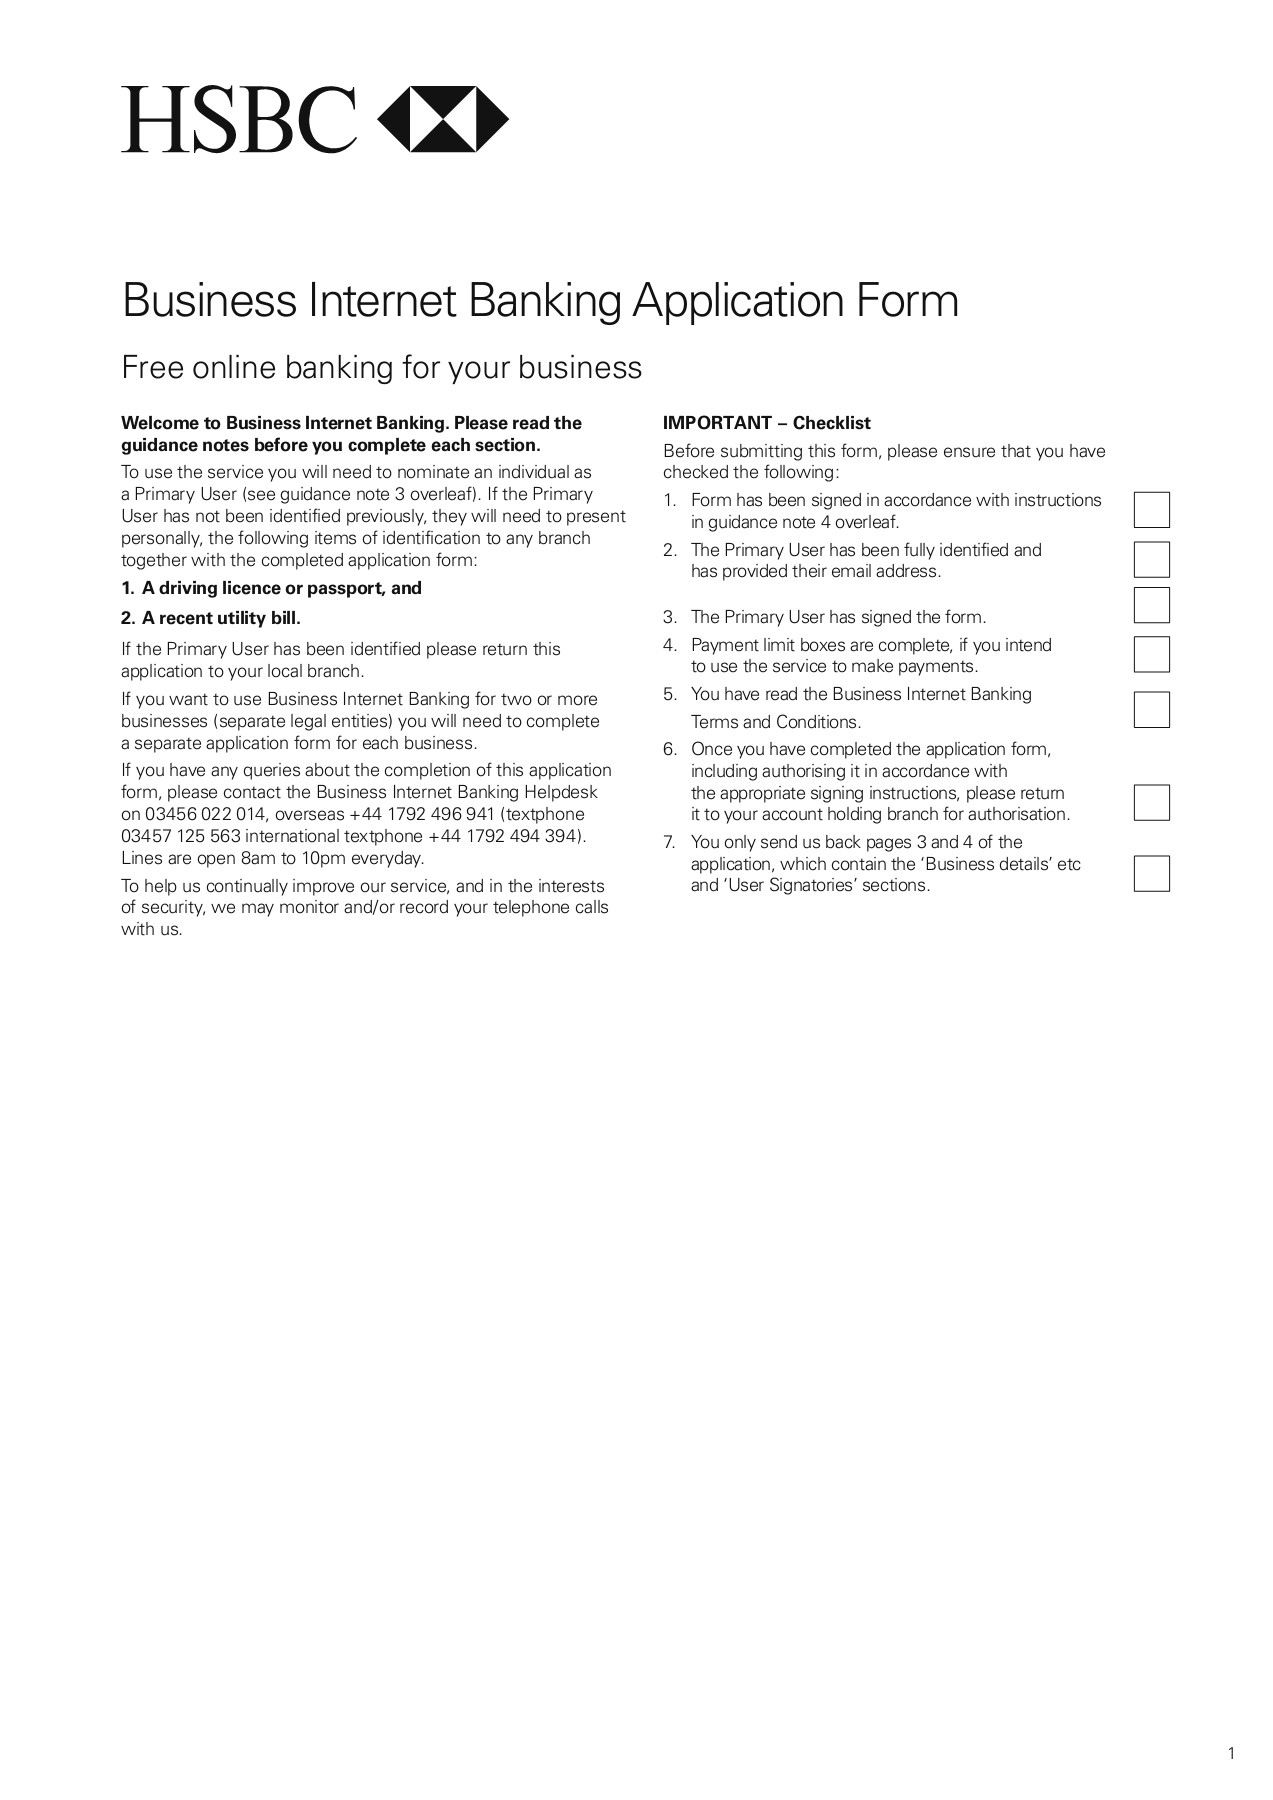 Business Internet Banking Application Form - HSBC Bank Pages 1 - 8